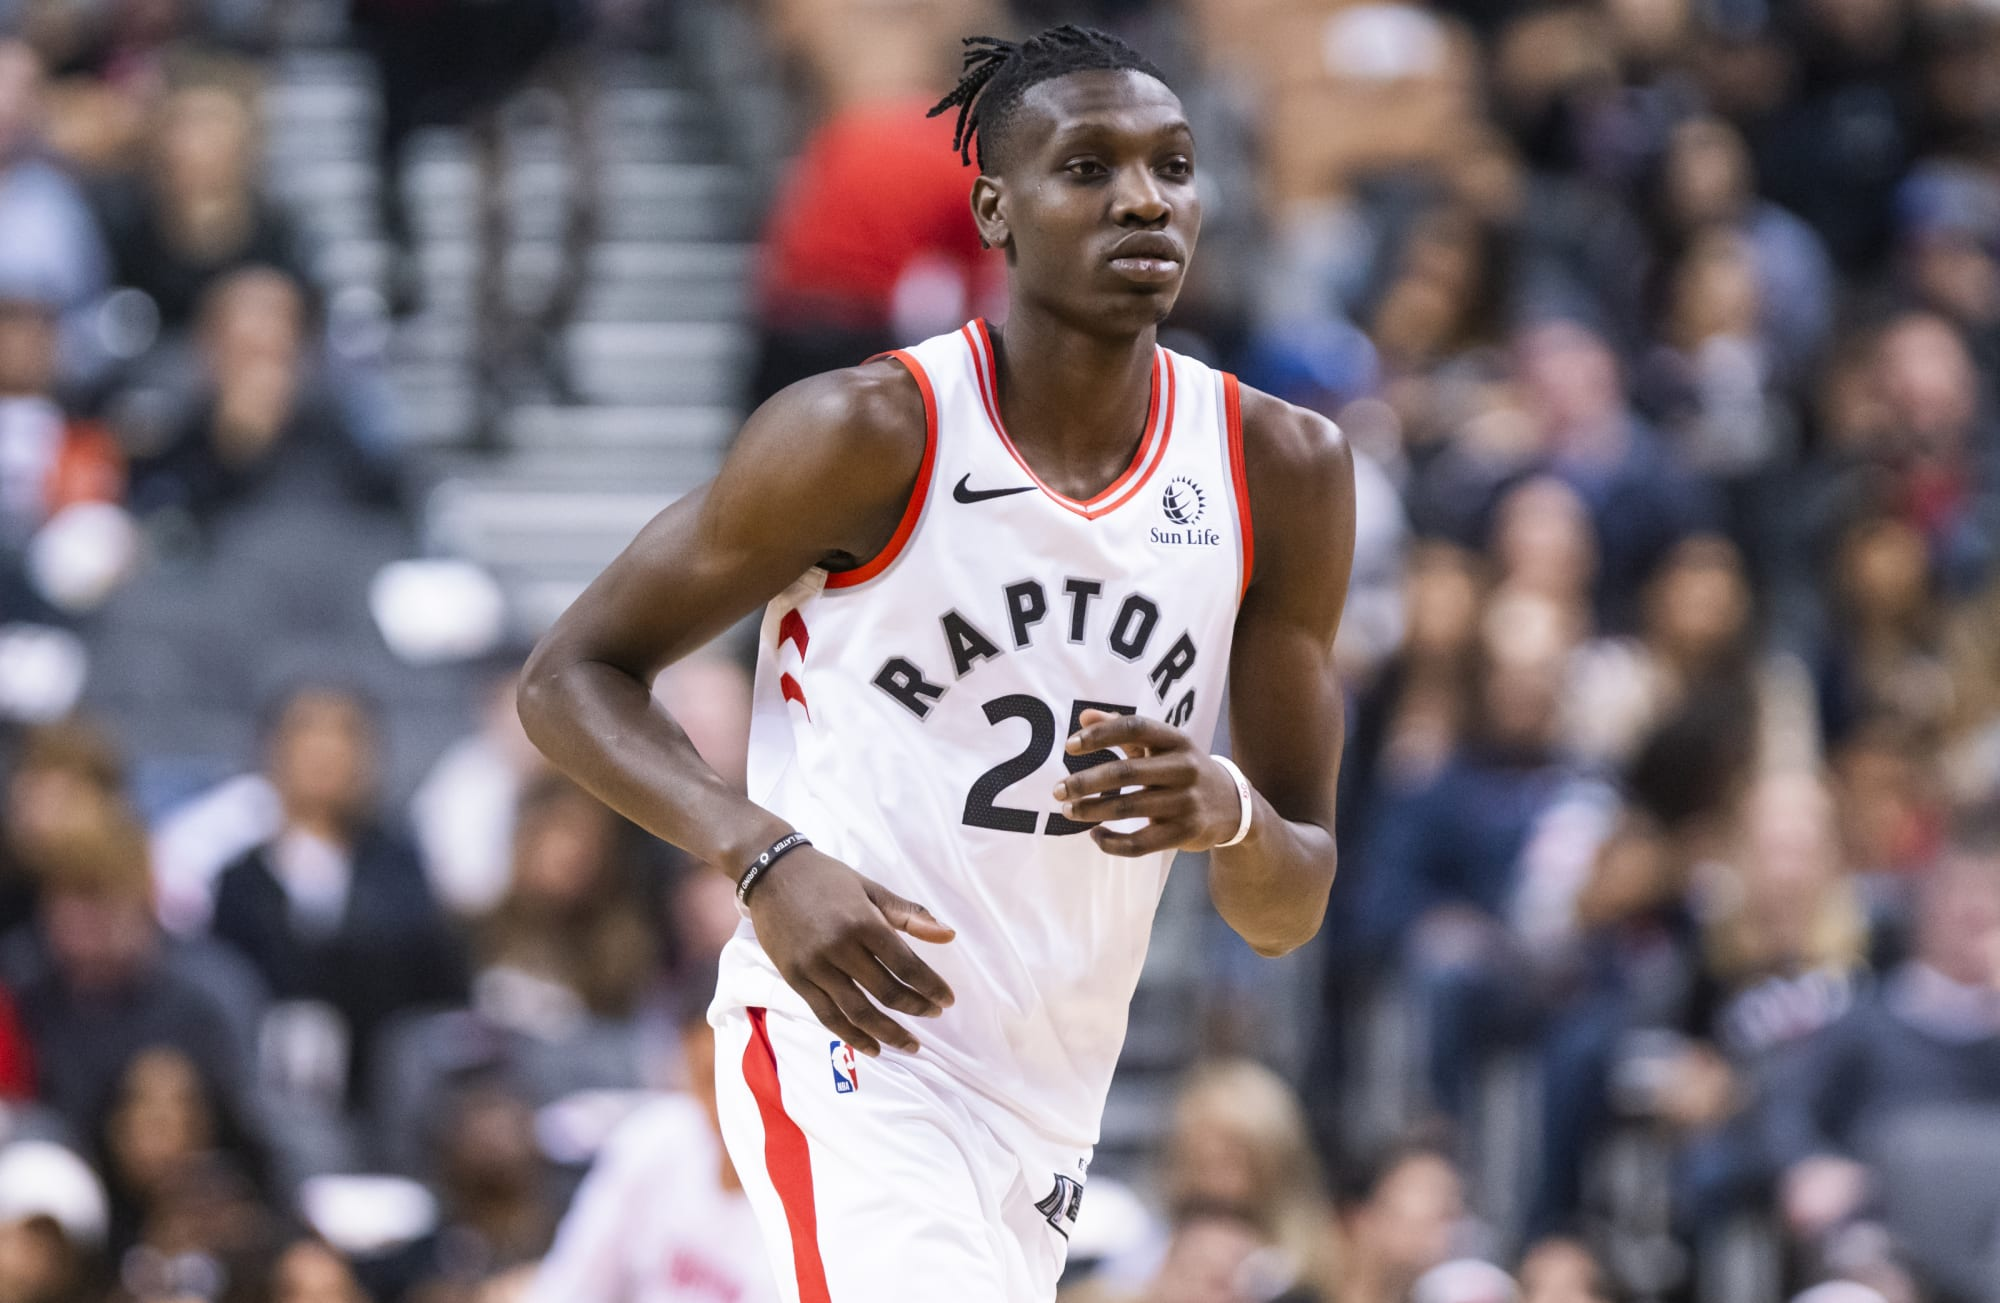 Toronto Raptors: Chris Boucher has the opportunity to be a key player this season